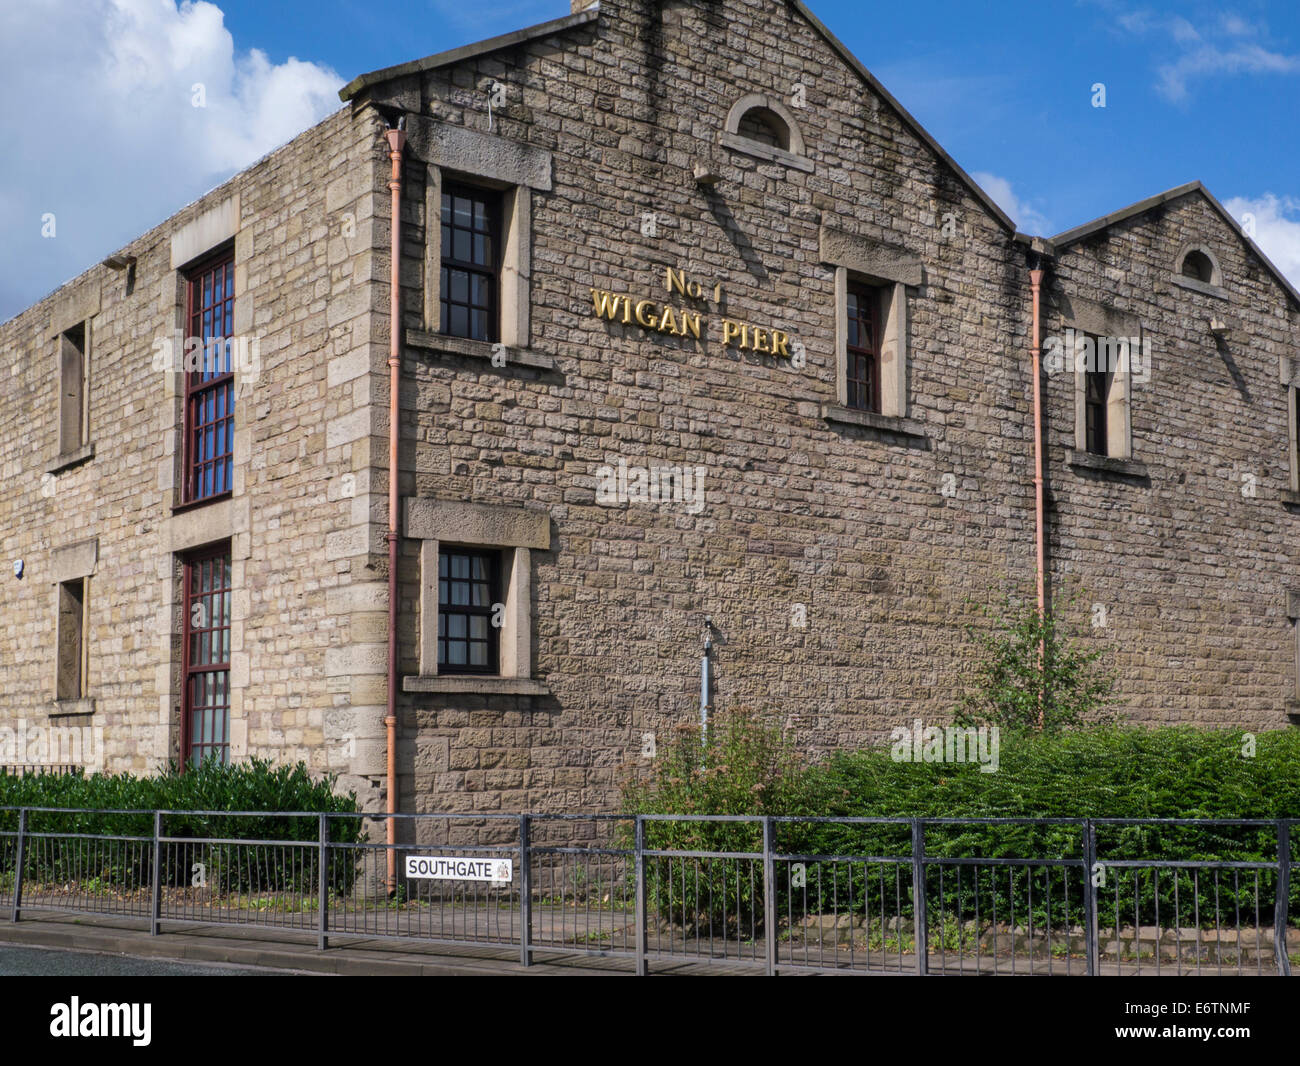 No 1 Wigan Pier built 1777 Terminus Warehouse used to store